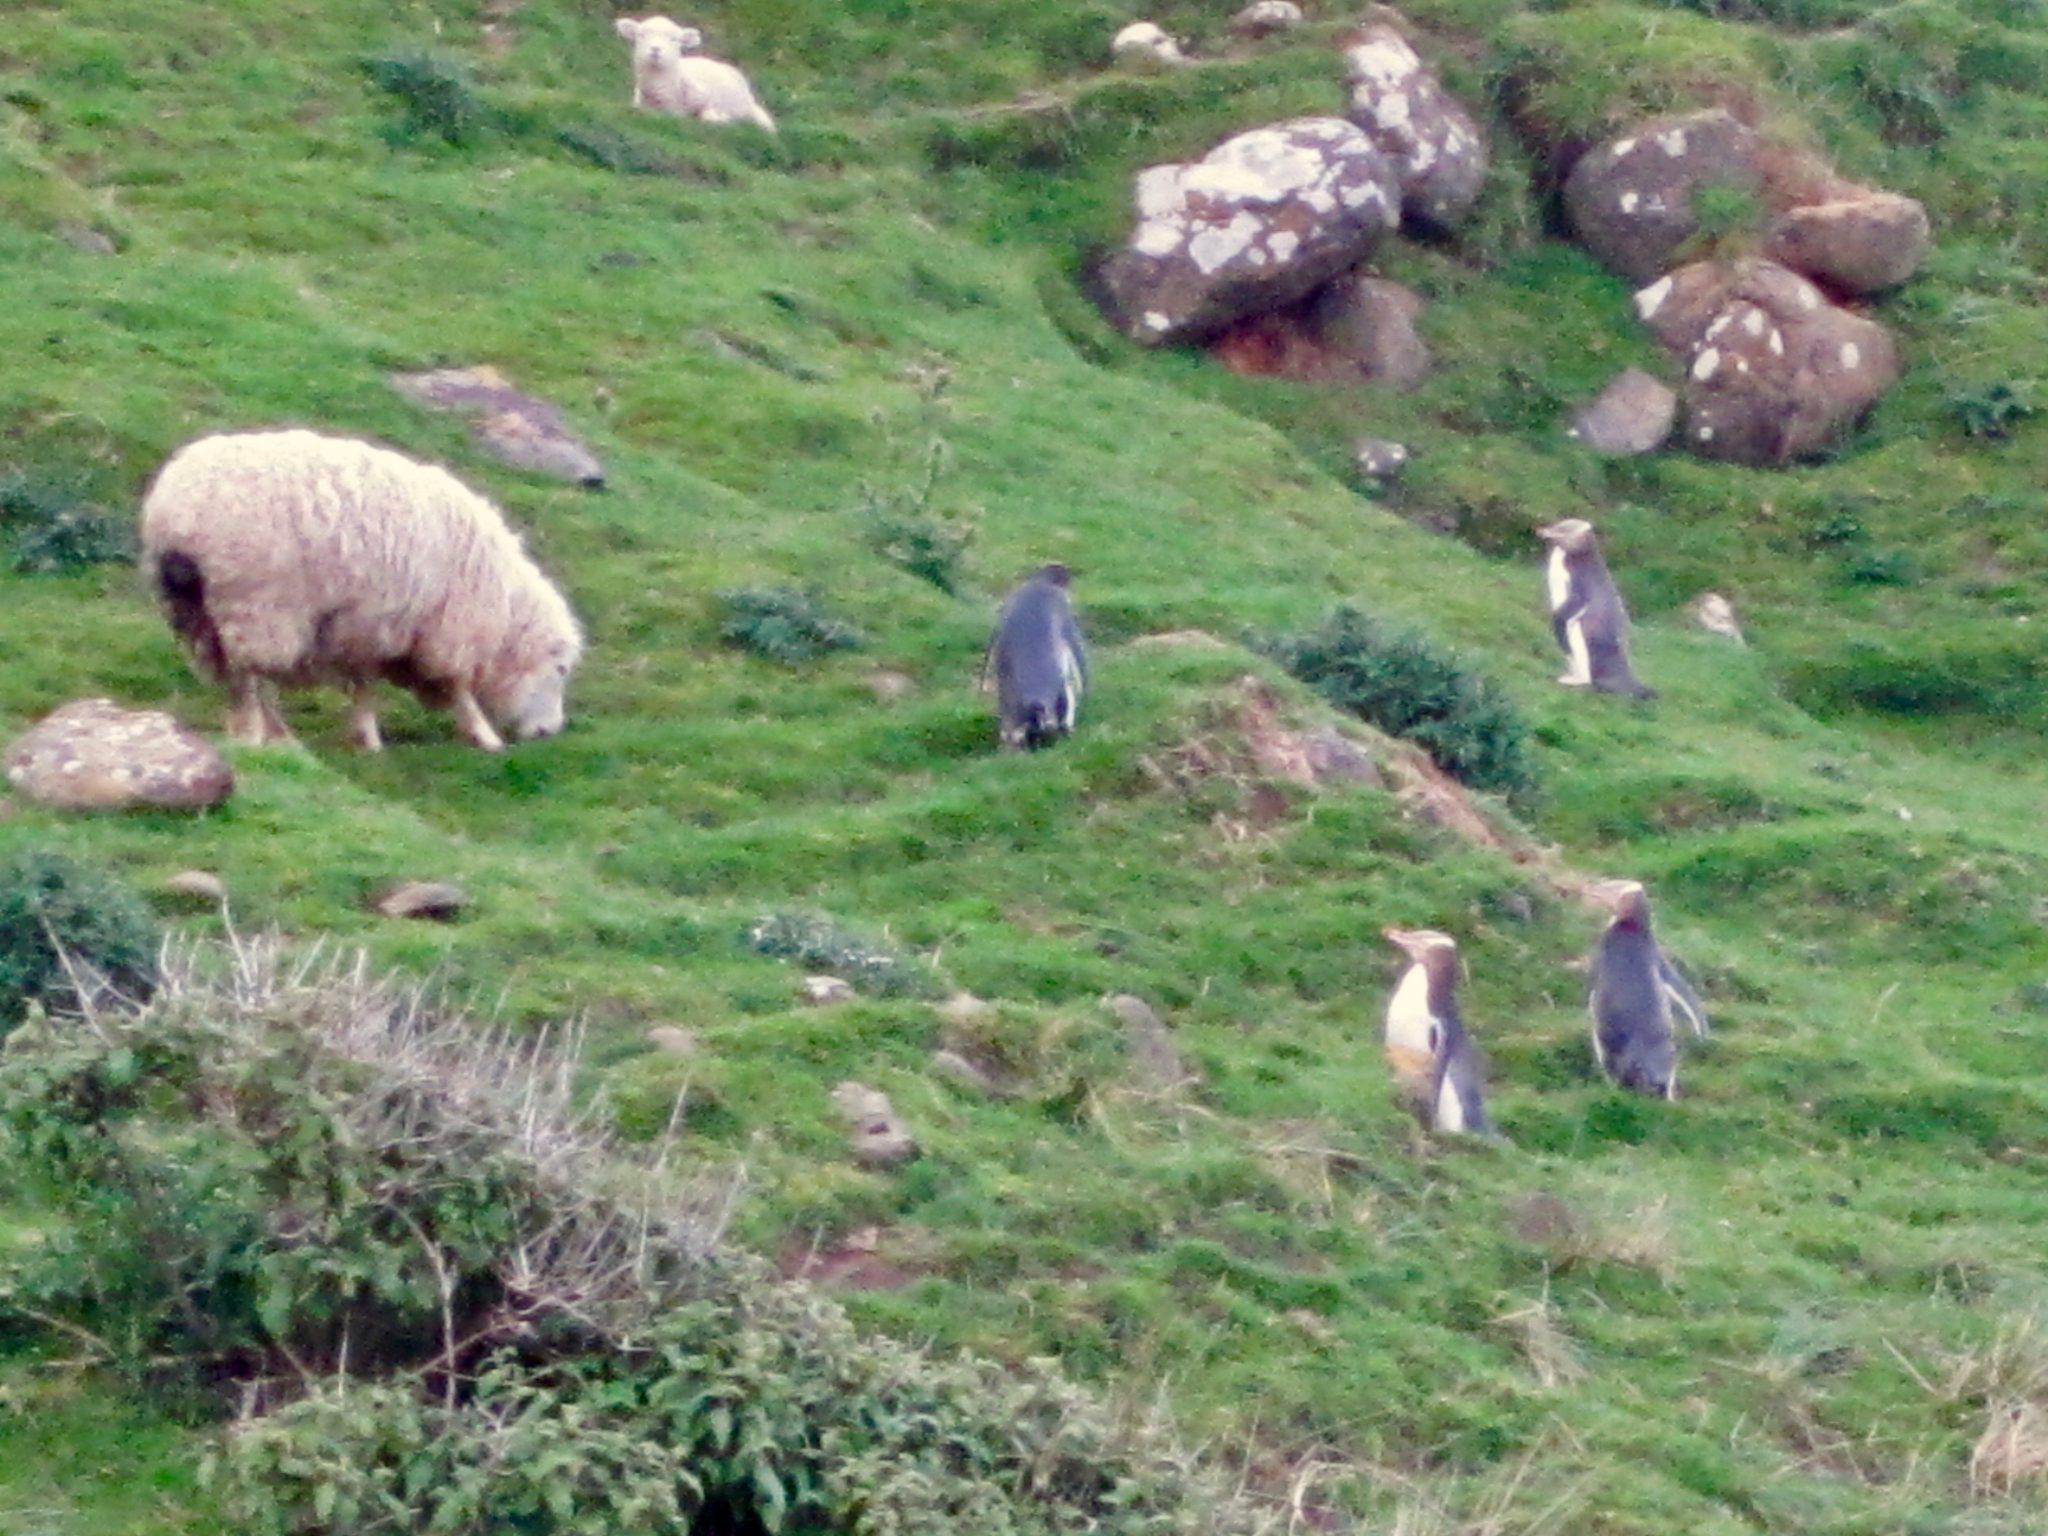 picture of sheep and penguin at penguins place in dunedin new zealand